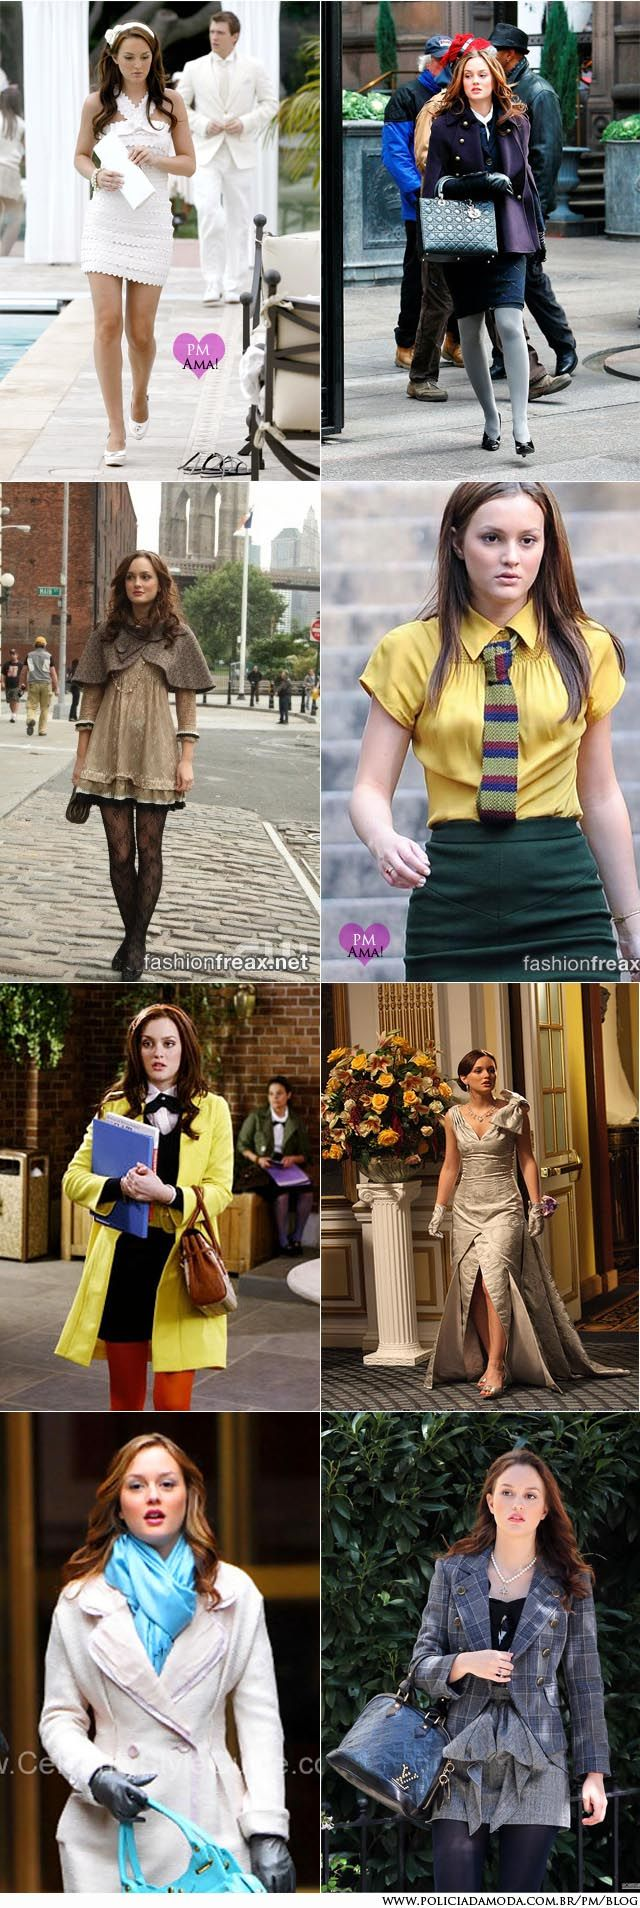 Blair Waldorf Style. some of the dresses need to be longer be amazing style